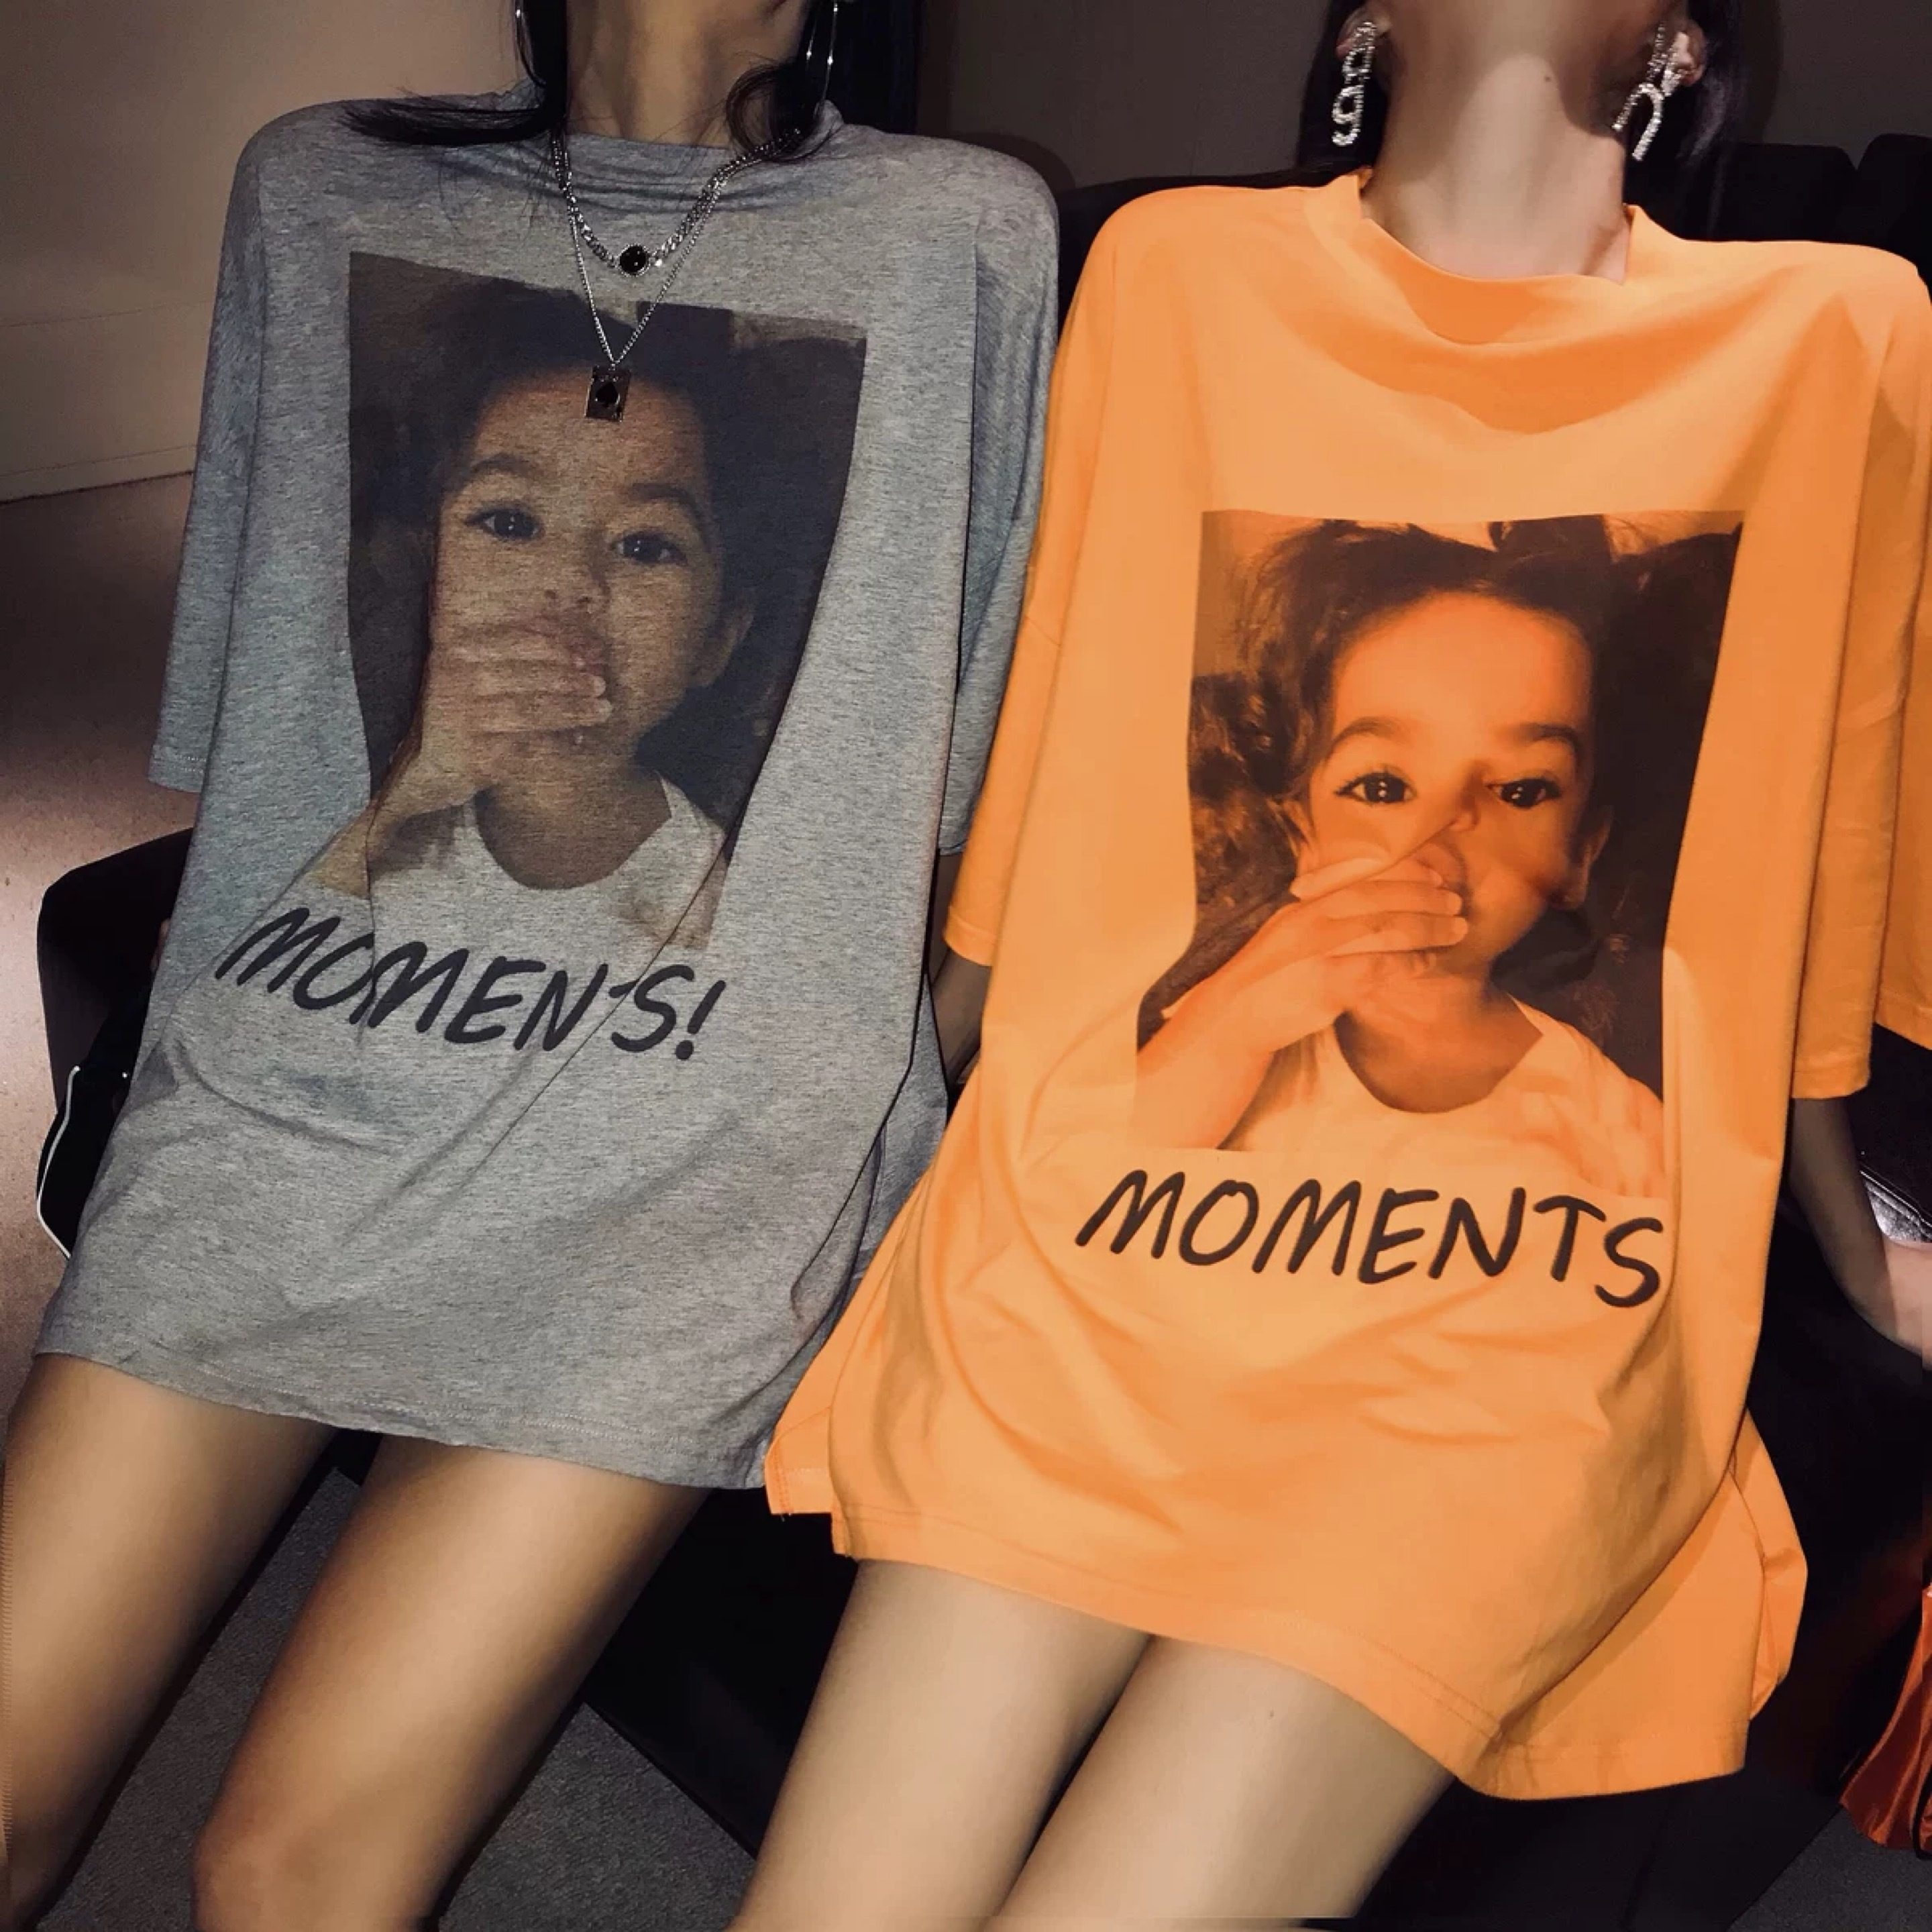 moments logo over t-shirt